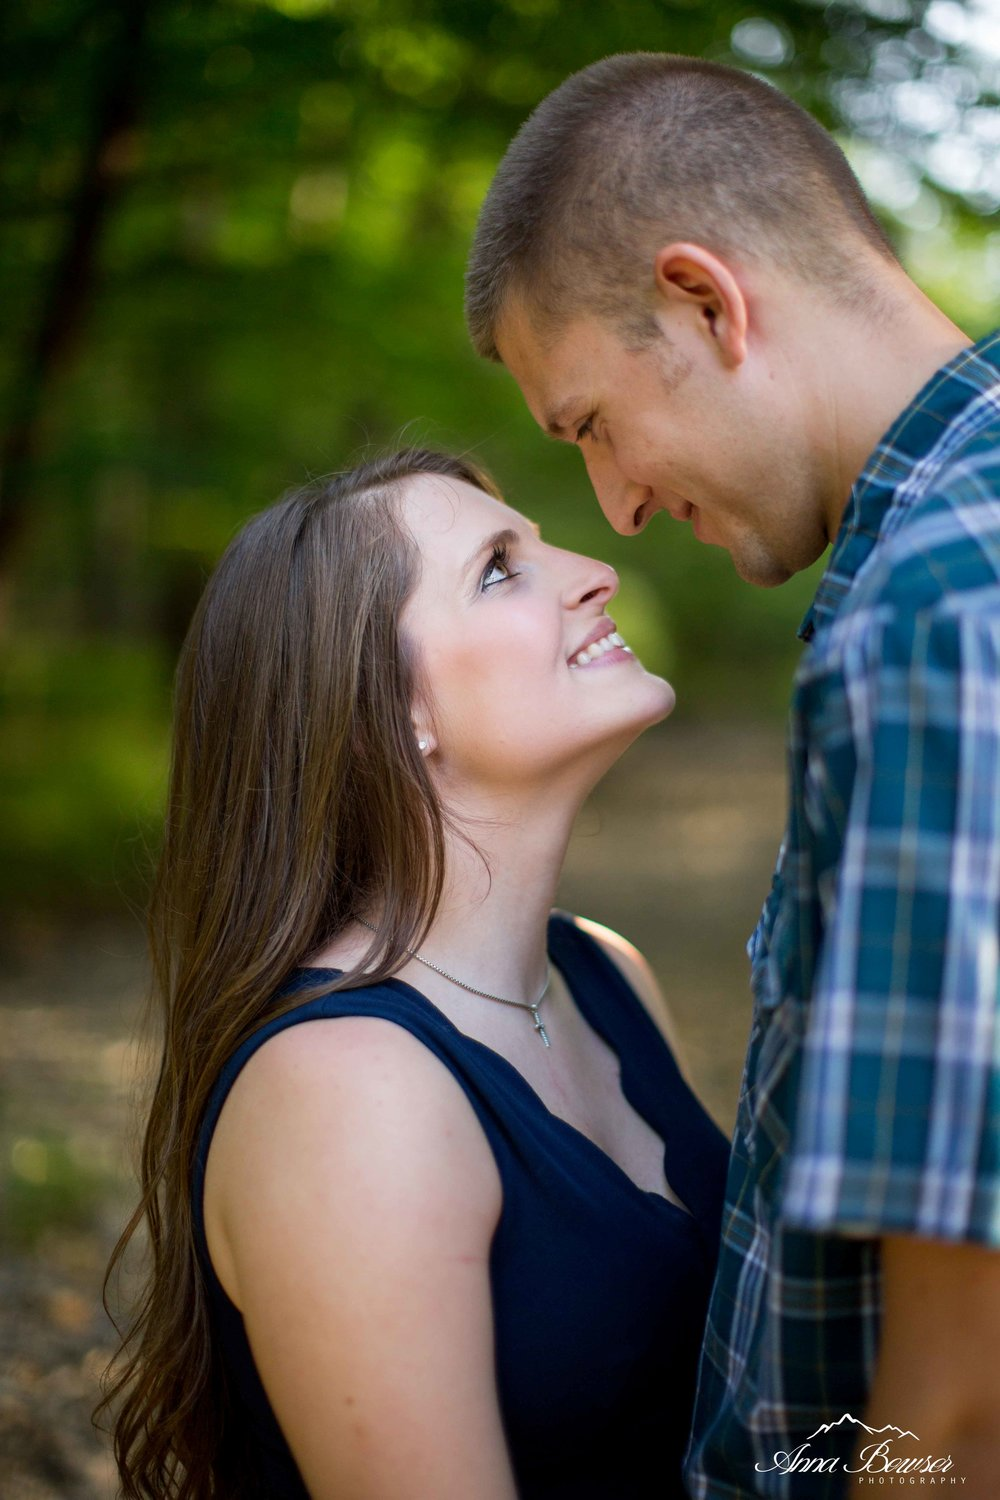 mountainengagement-annabowserphotography-virginiaengagementphotographer-21.jpg